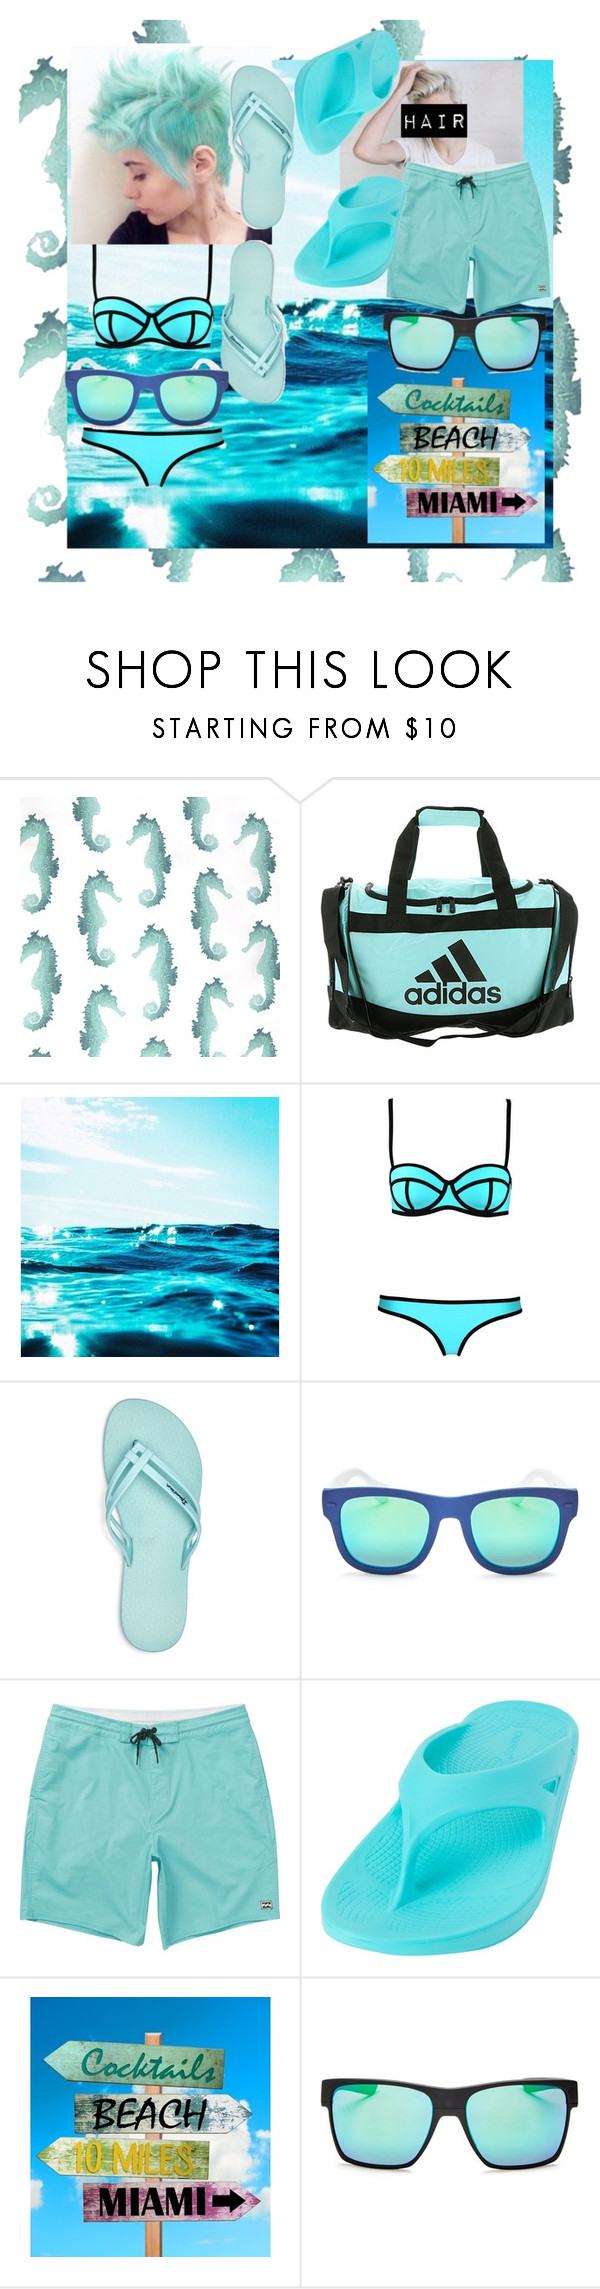 Adidas clipart word By liked  S DutchCrafters